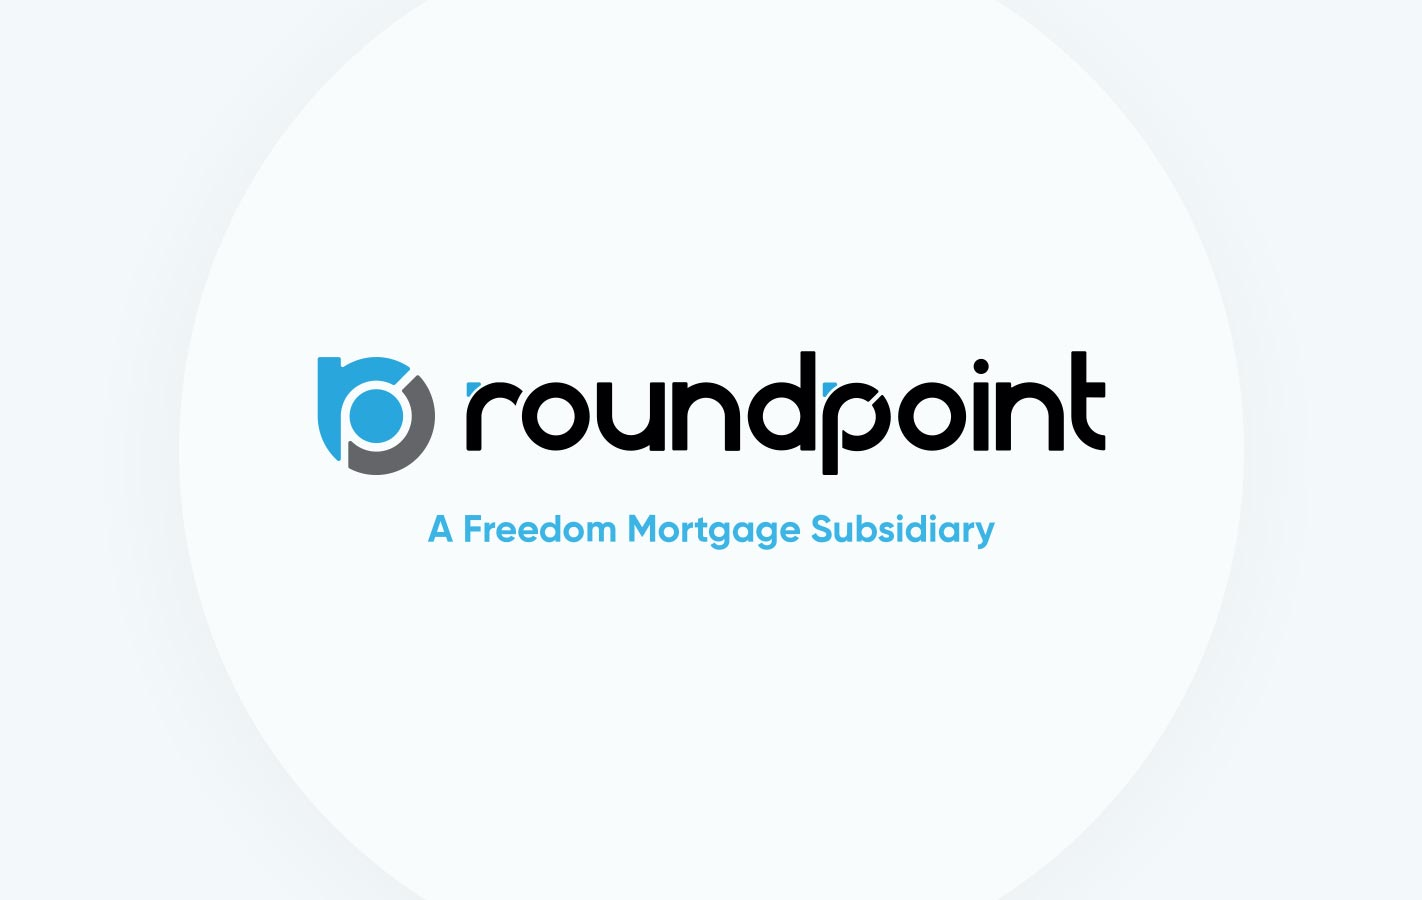 Roundpoint changes management team after Freedom mortgage acquisition